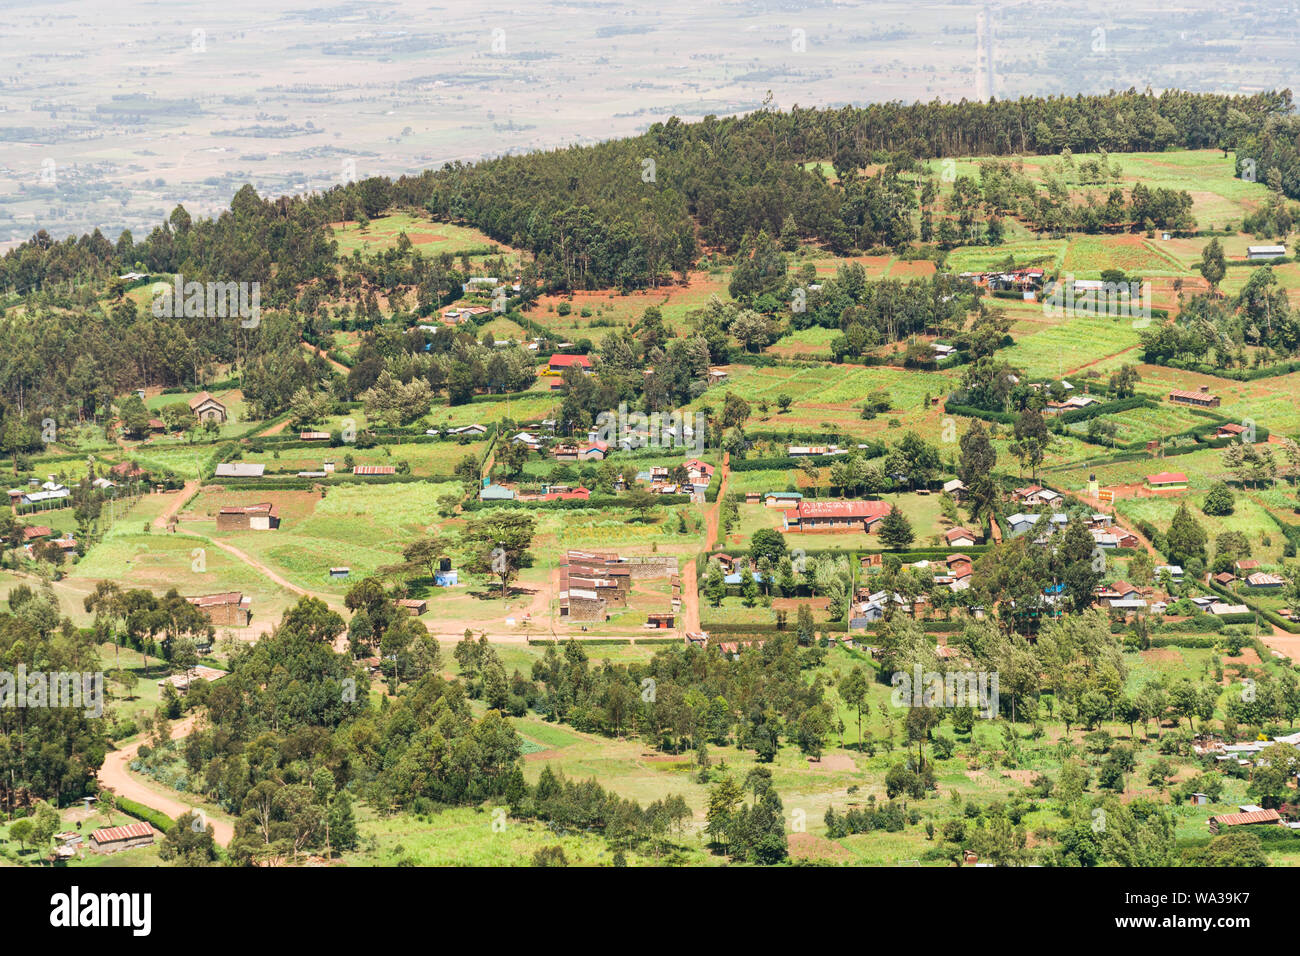 Elevated view of homes, farms and buildings in the Rift Valley, Kenya Stock Photo